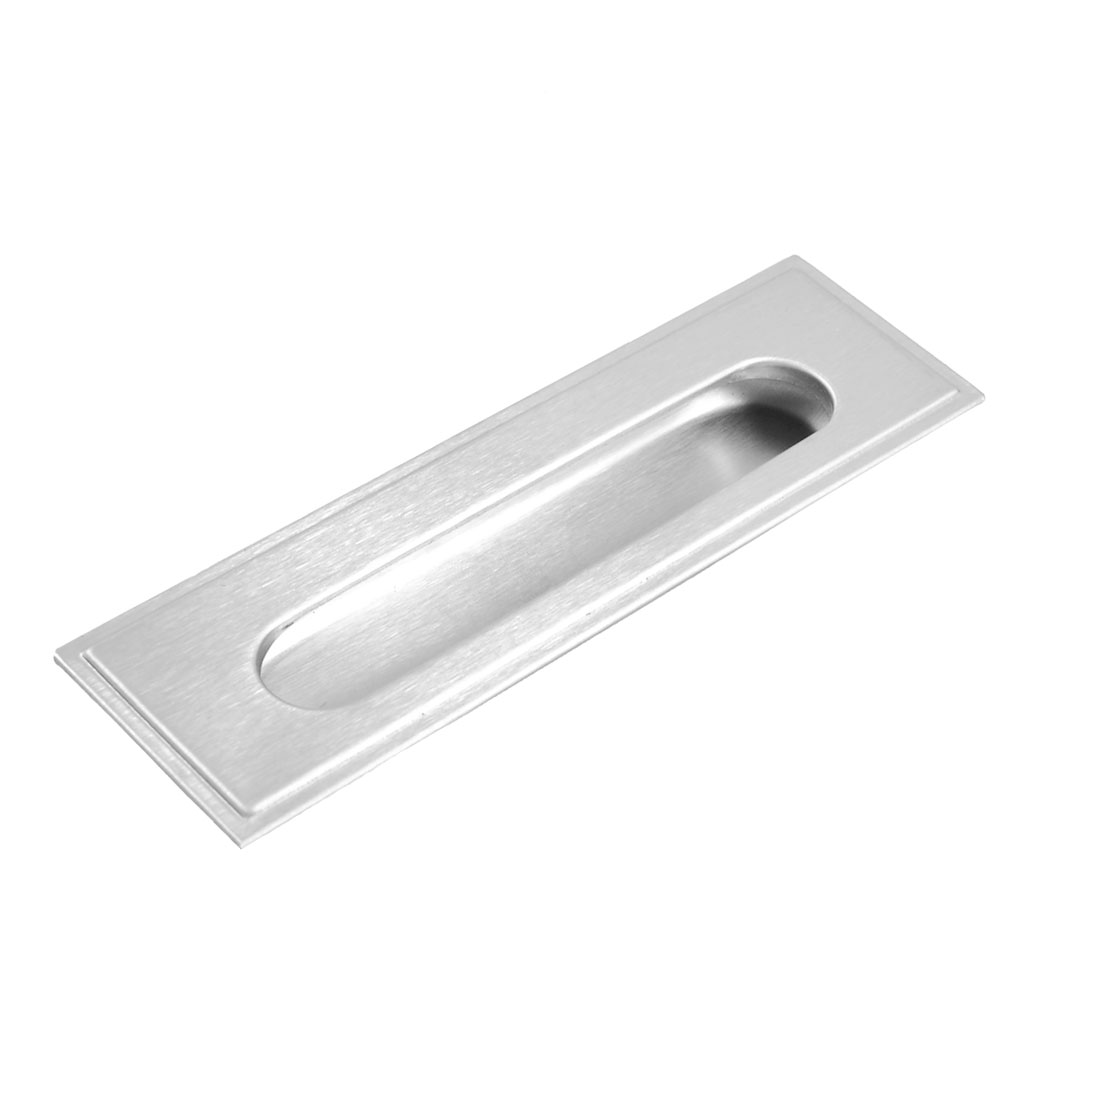 Cabinet Stainless Steel Rectangular Recessed Flush Pull 140mm Long